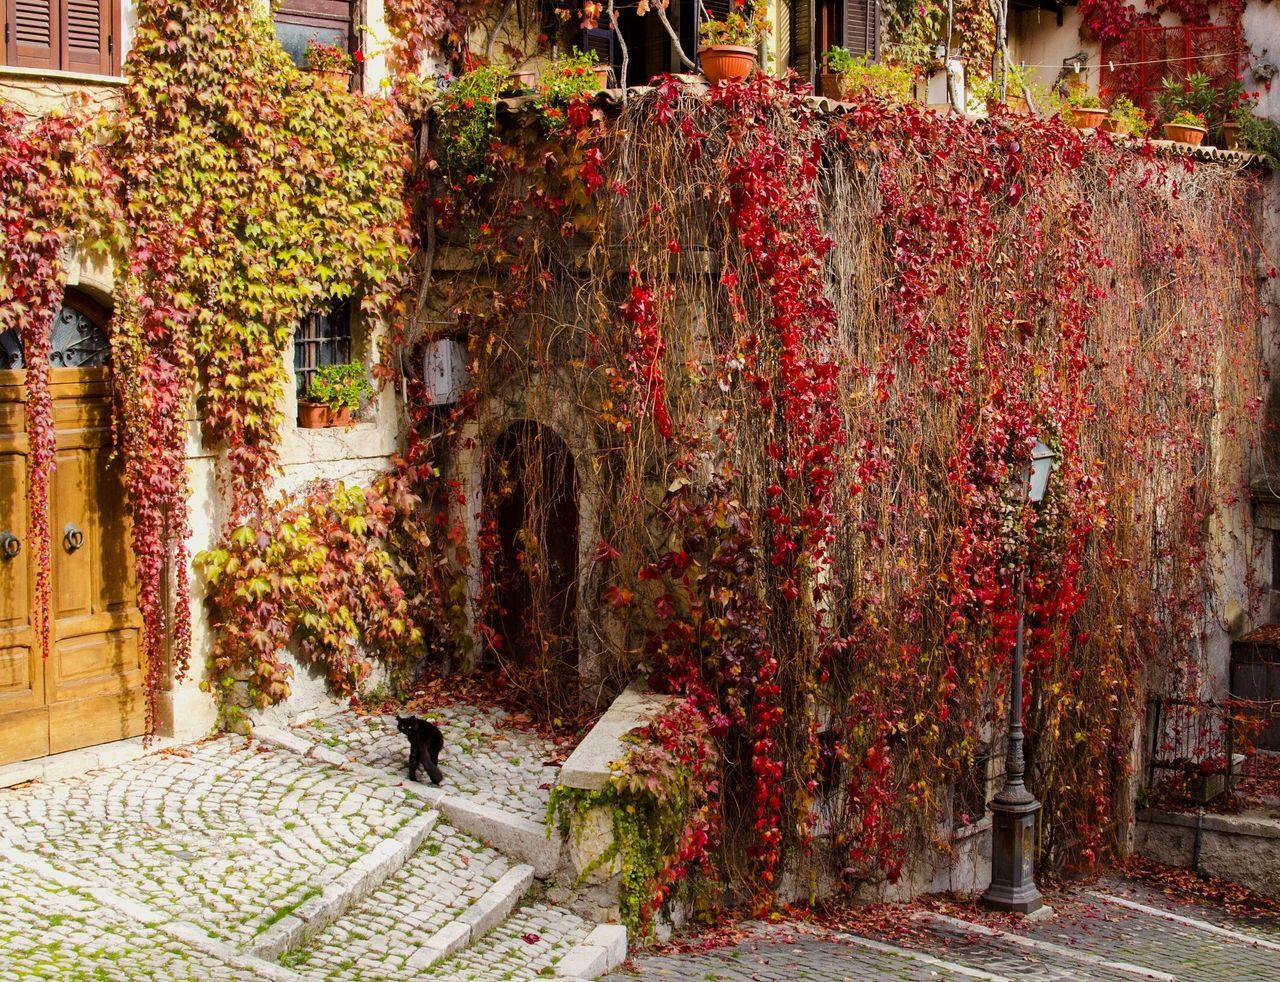 abundance, day, flower, outdoors, no people, autumn, multi colored, architecture, tree